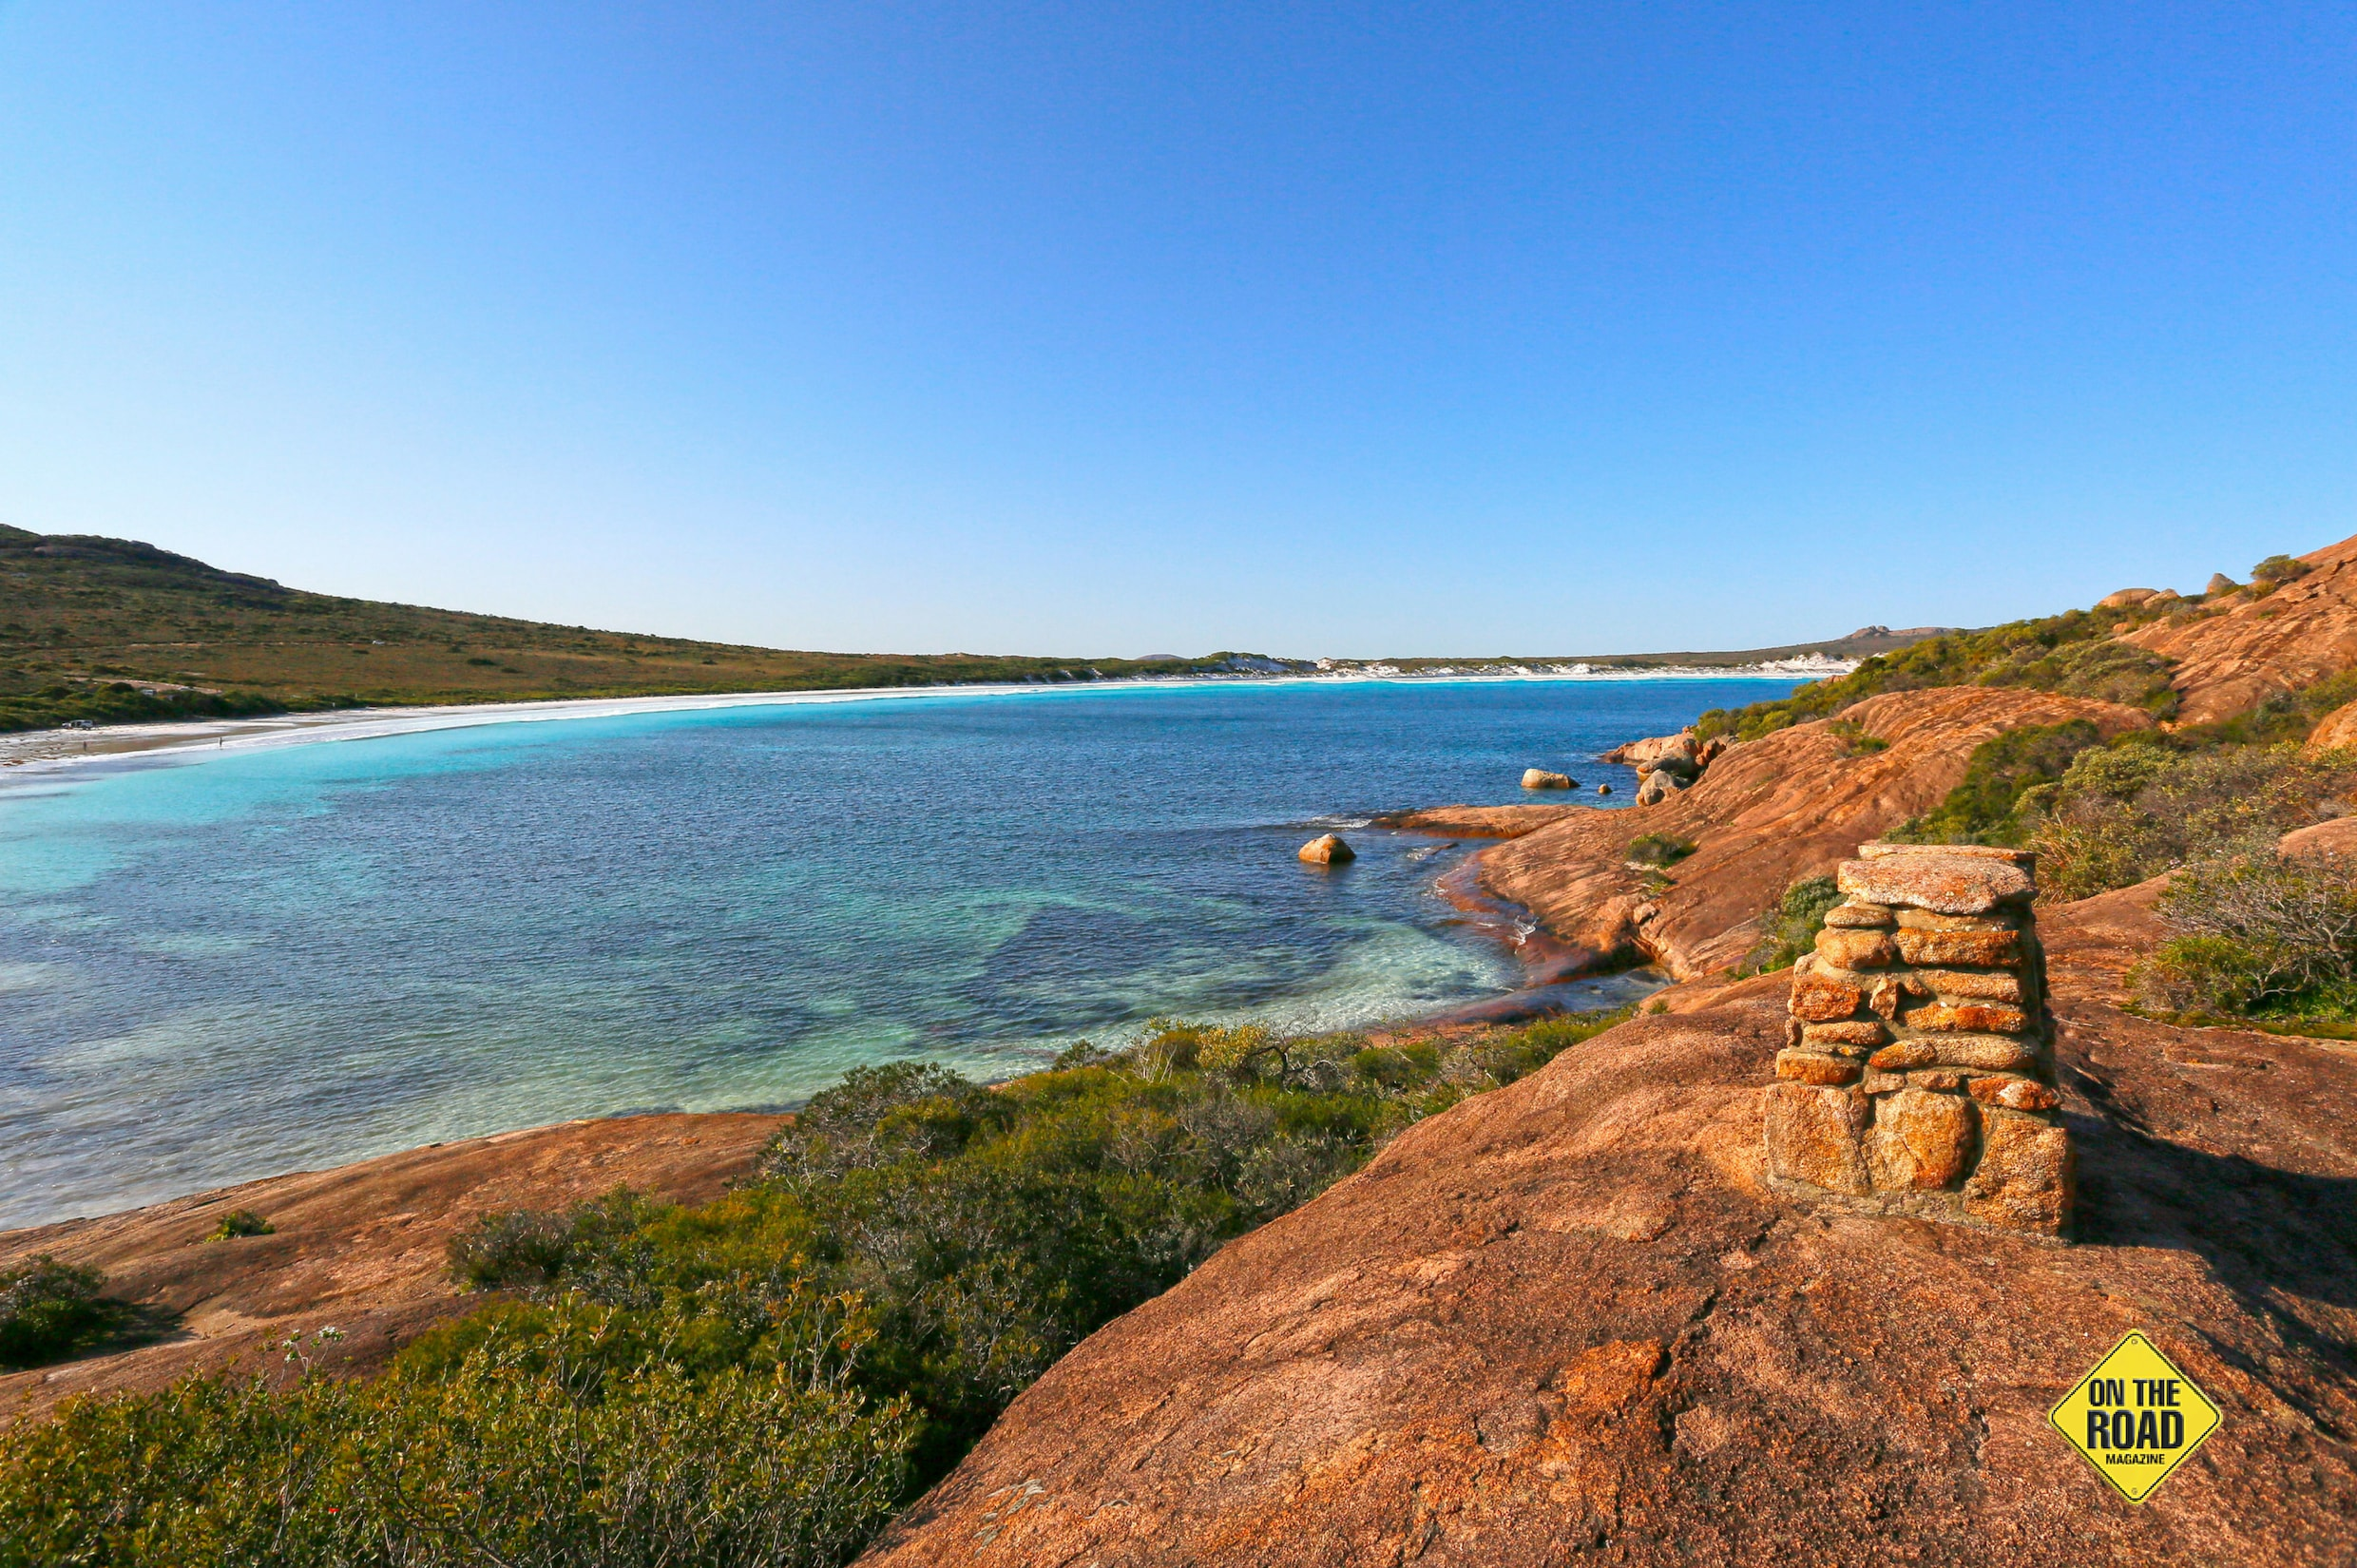 The cairn commemorating Matthew Flinders' visit to Lucky Bay in 1802